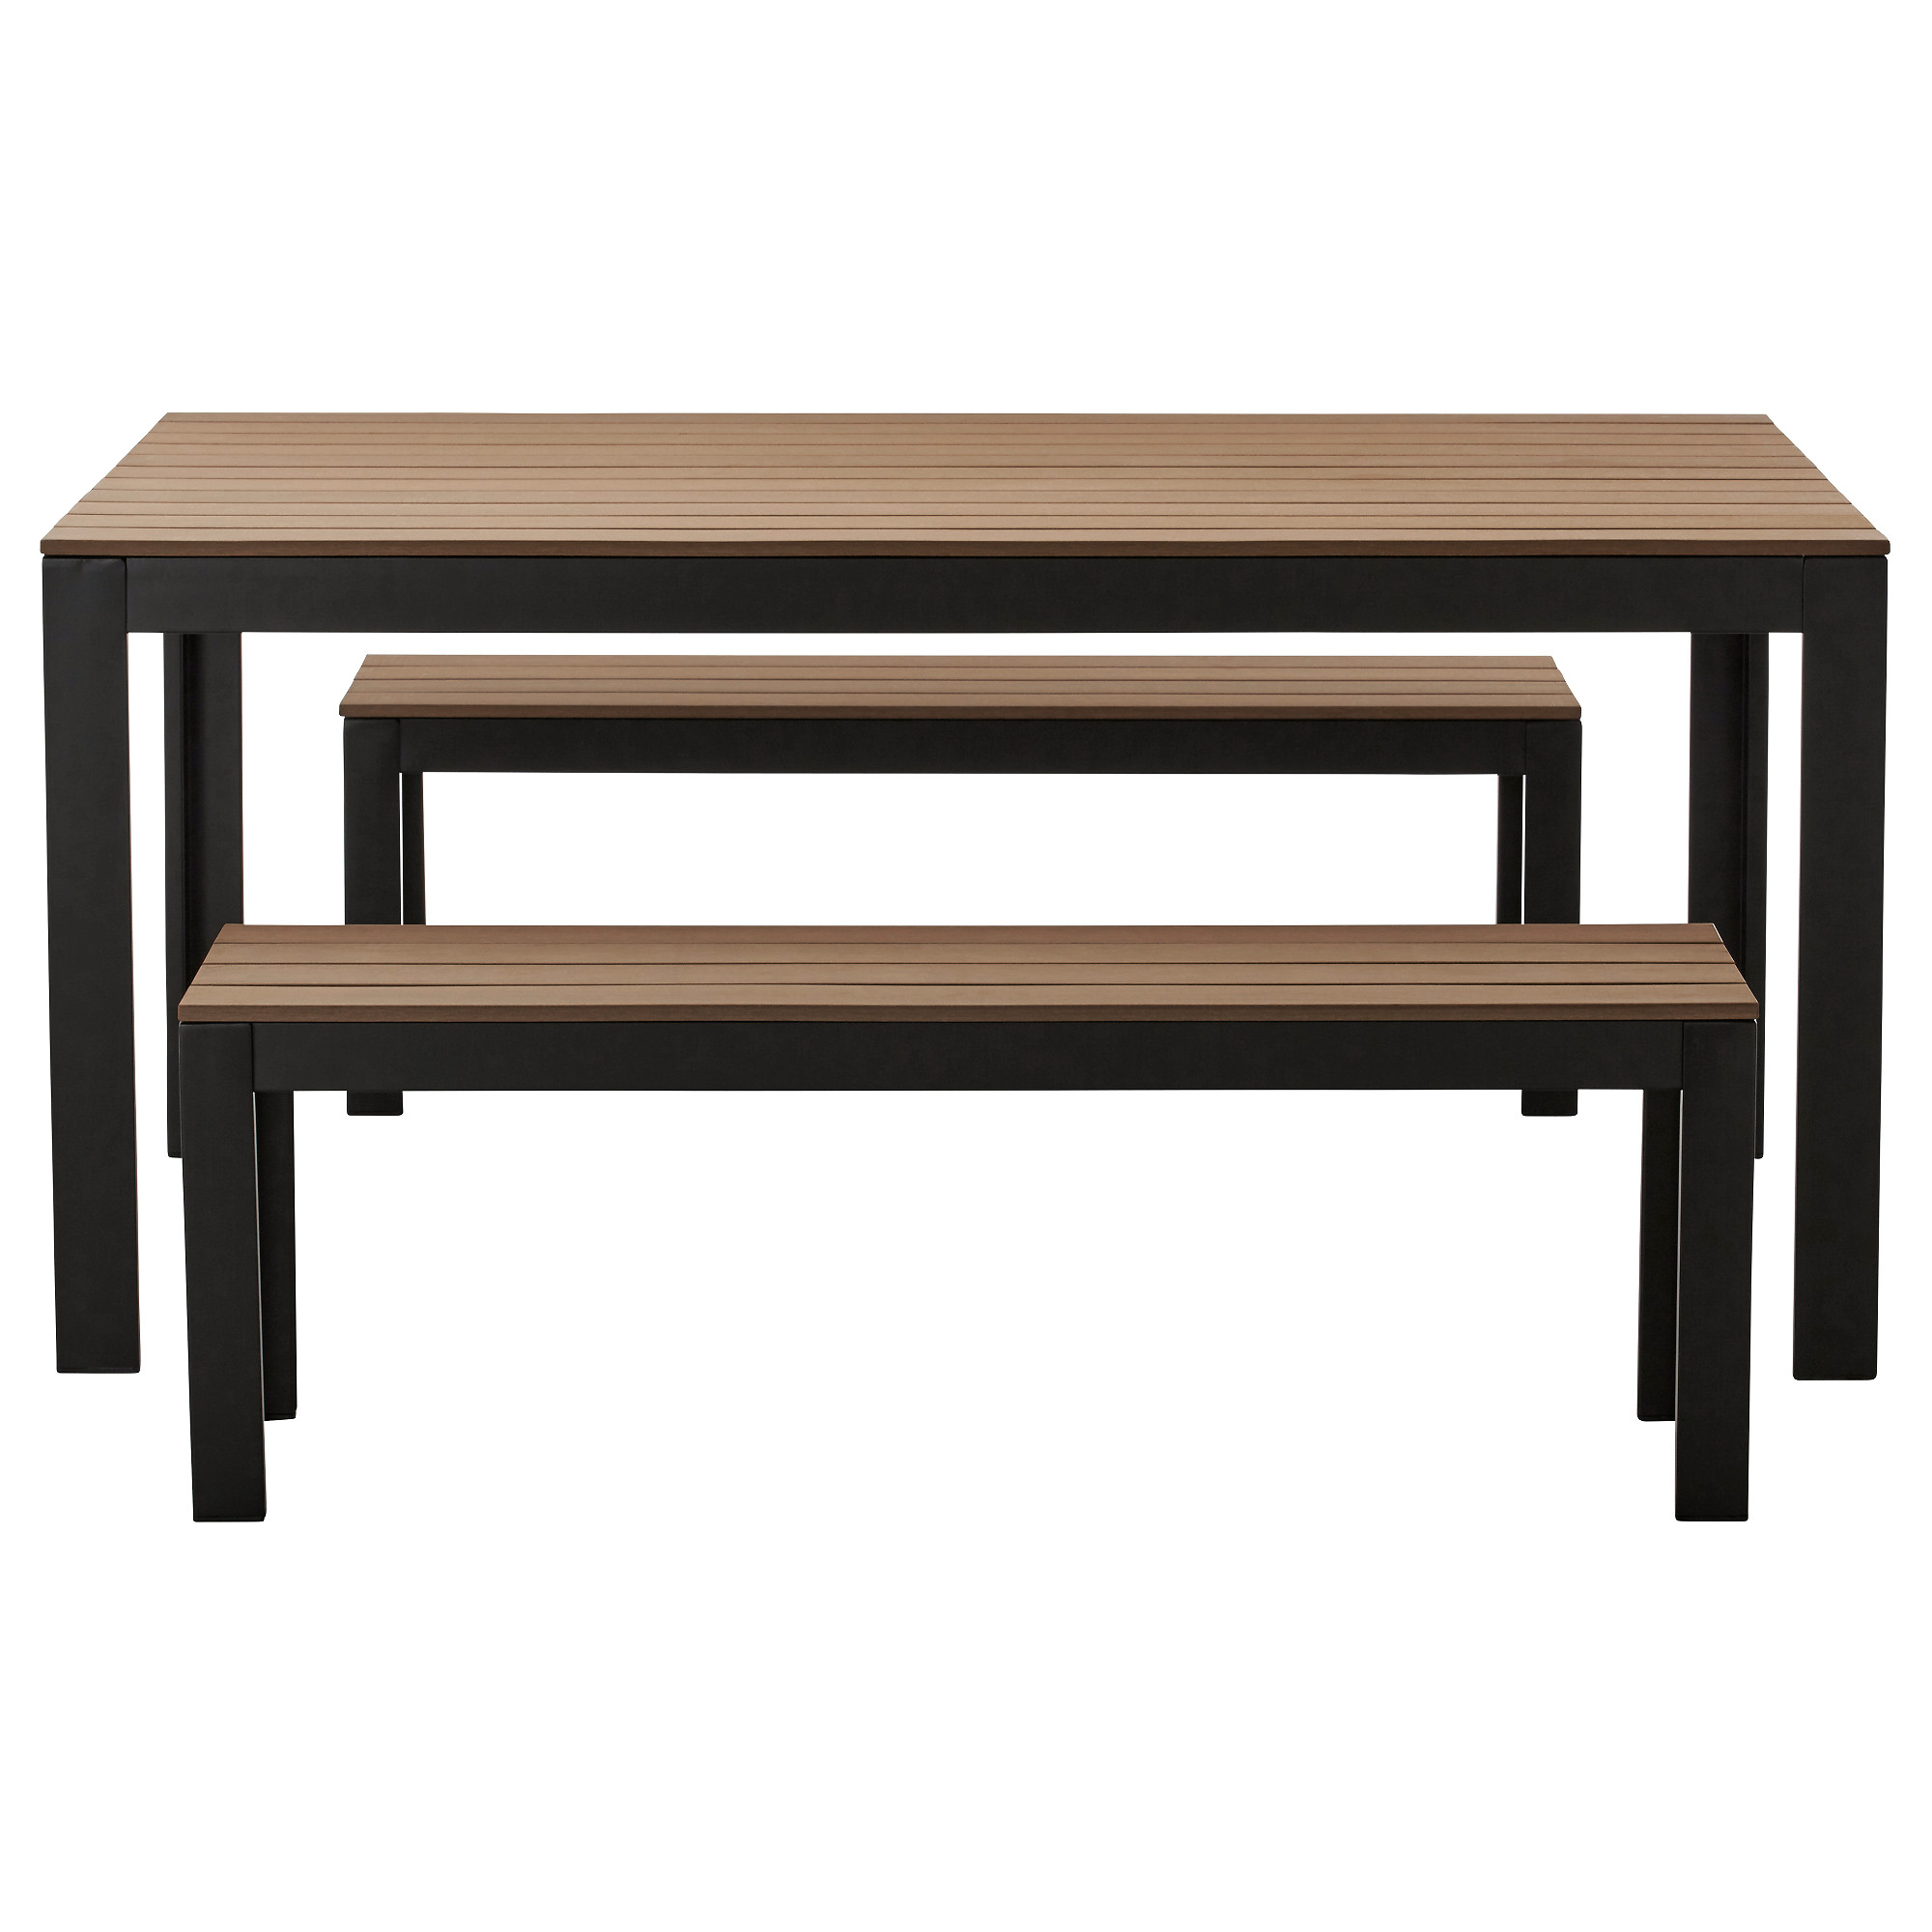 FALSTER Table 2 Benches Outdoor